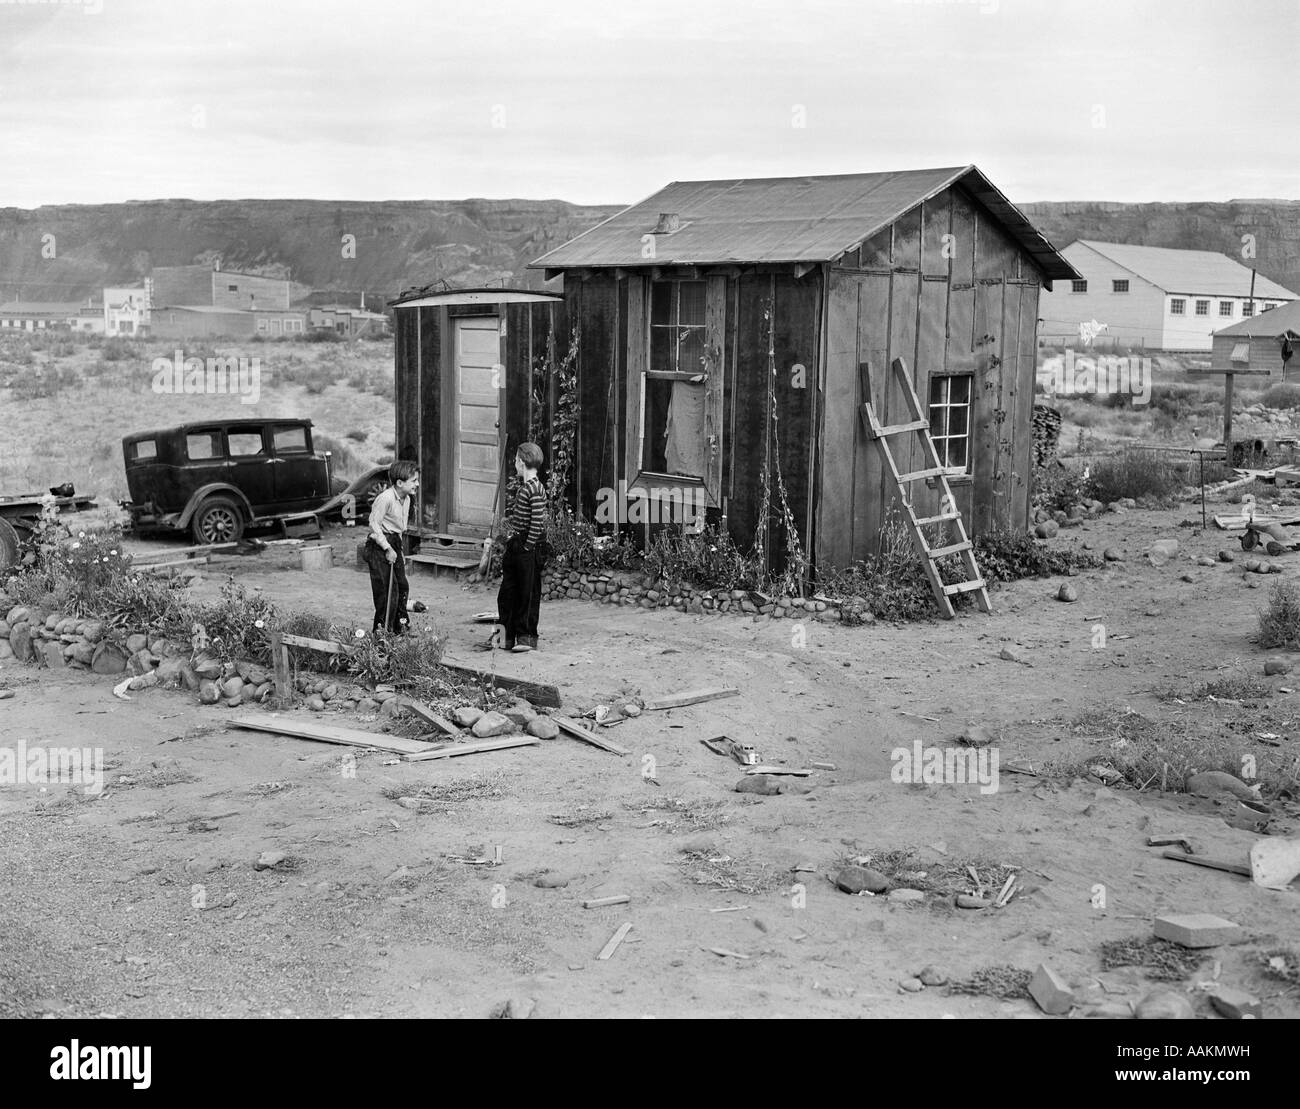 1930s Poverty Scene With Two Boys Playing In Front Of